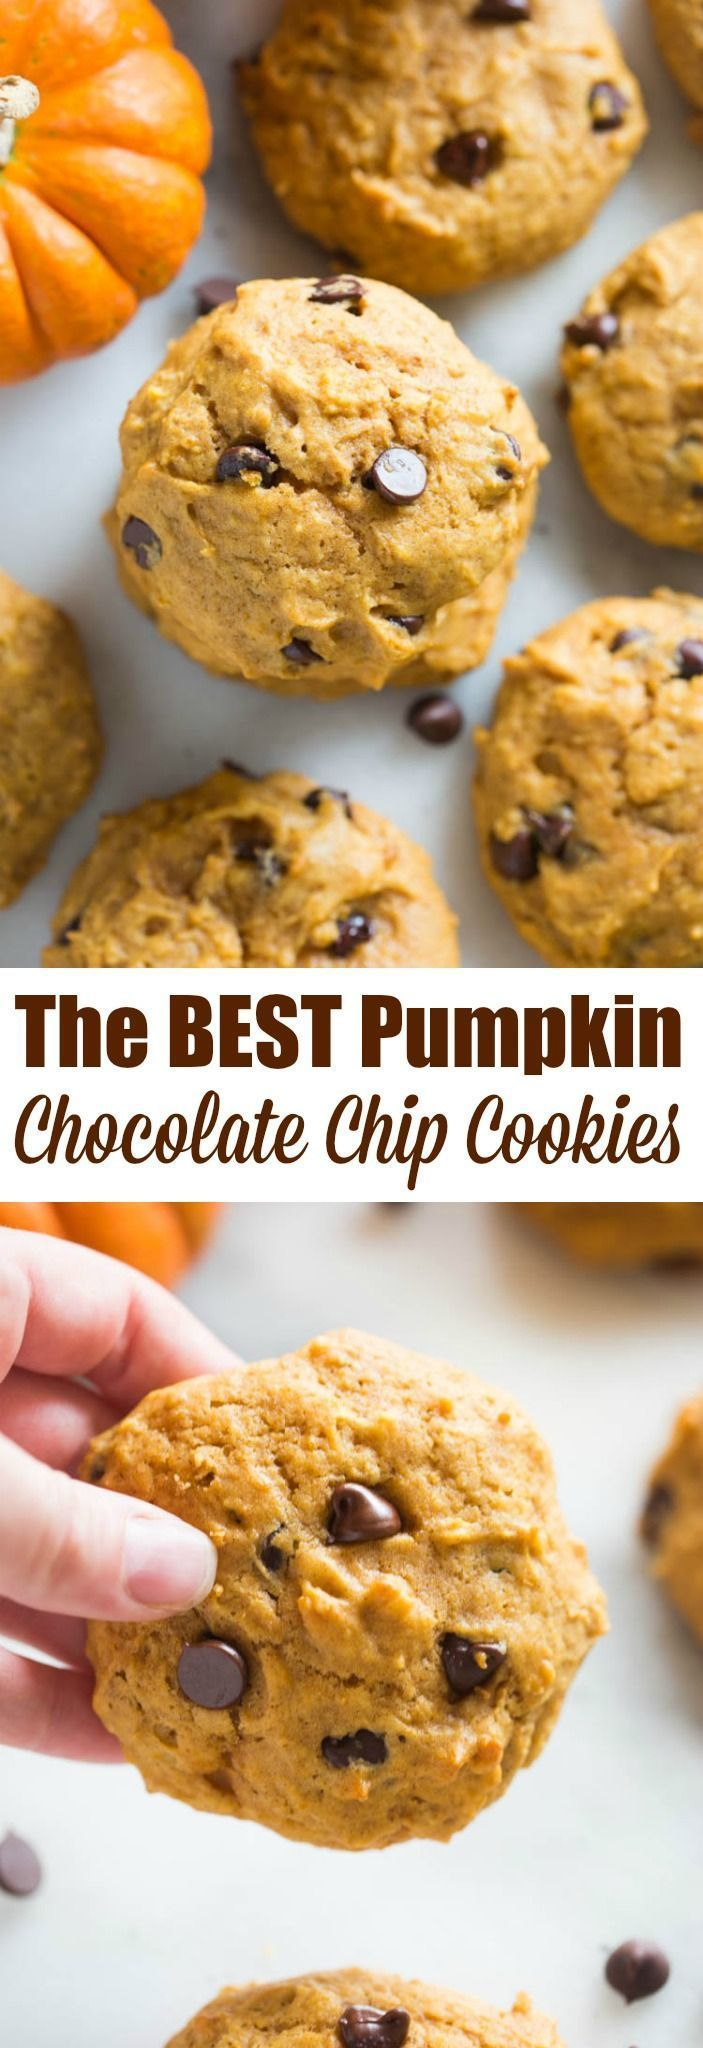 Pumpkin Chocolate Chip Cookies #pumpkindesserts